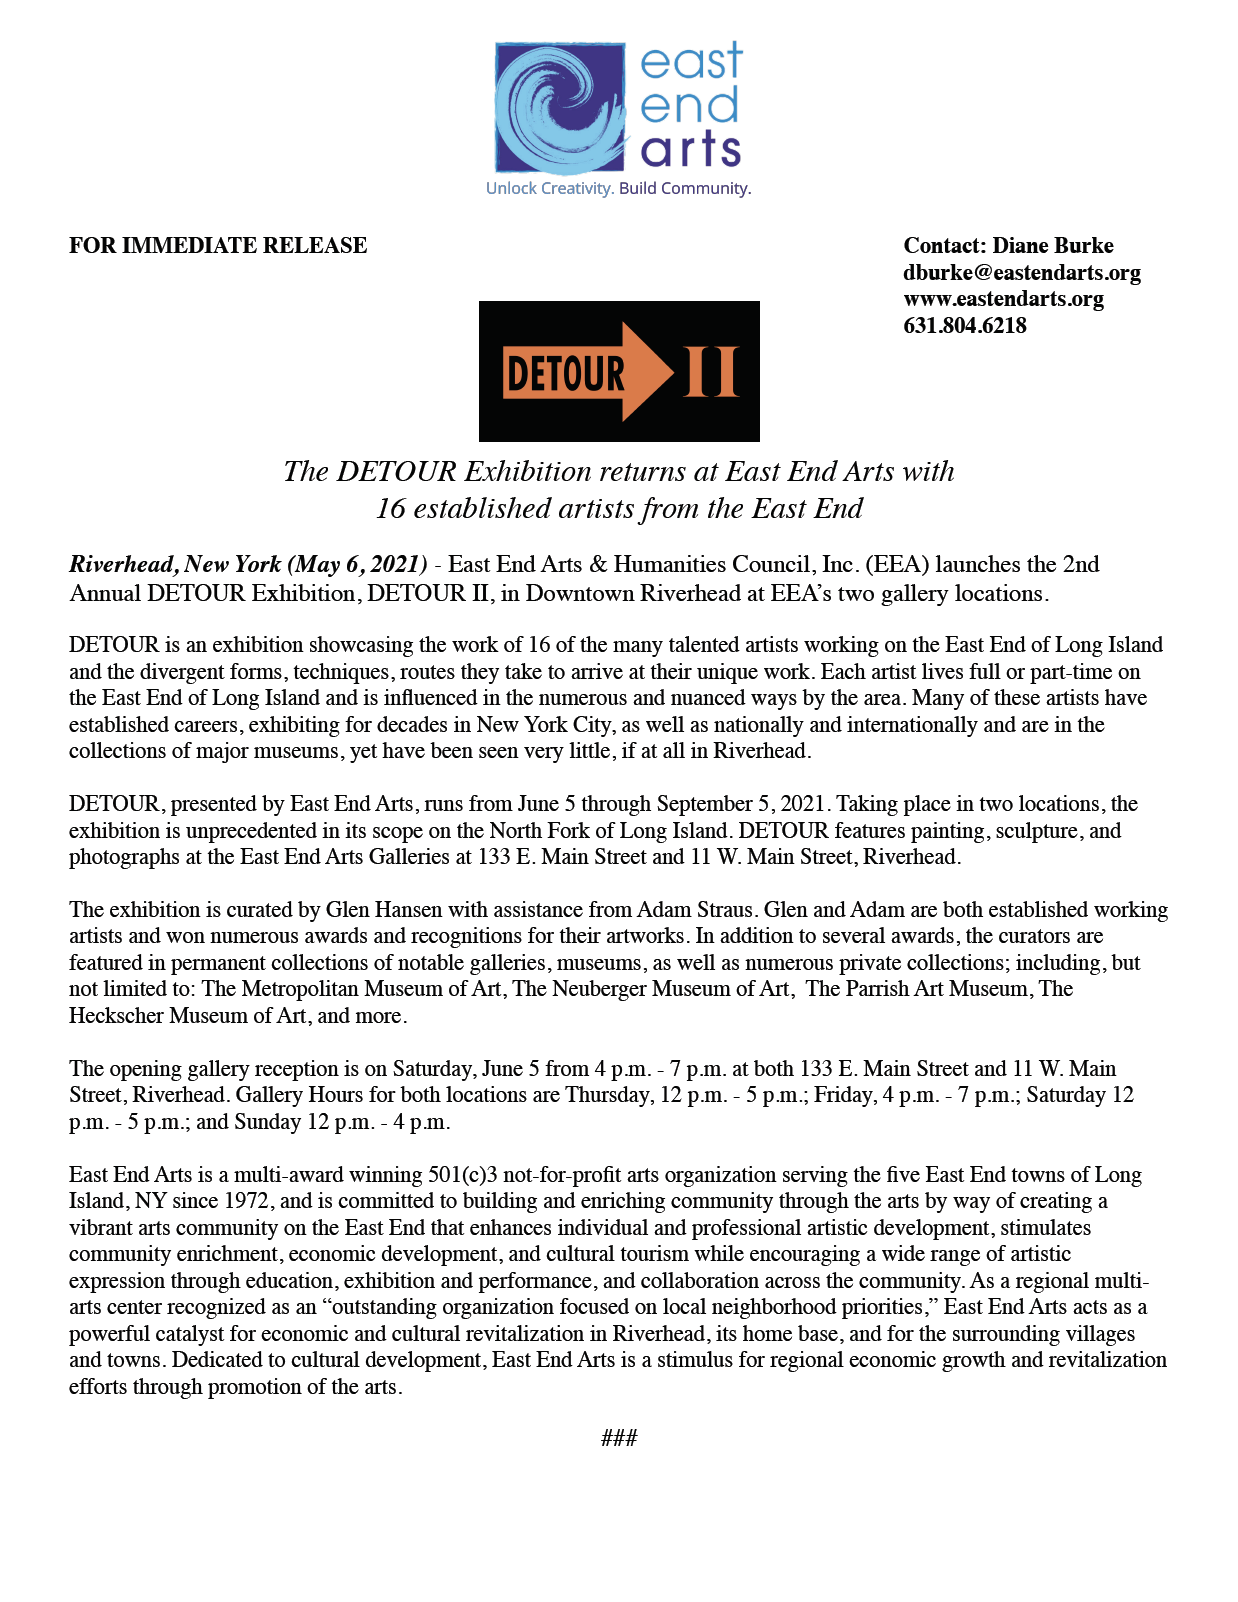 Click here for a PDF of the DETOUR II press release>>